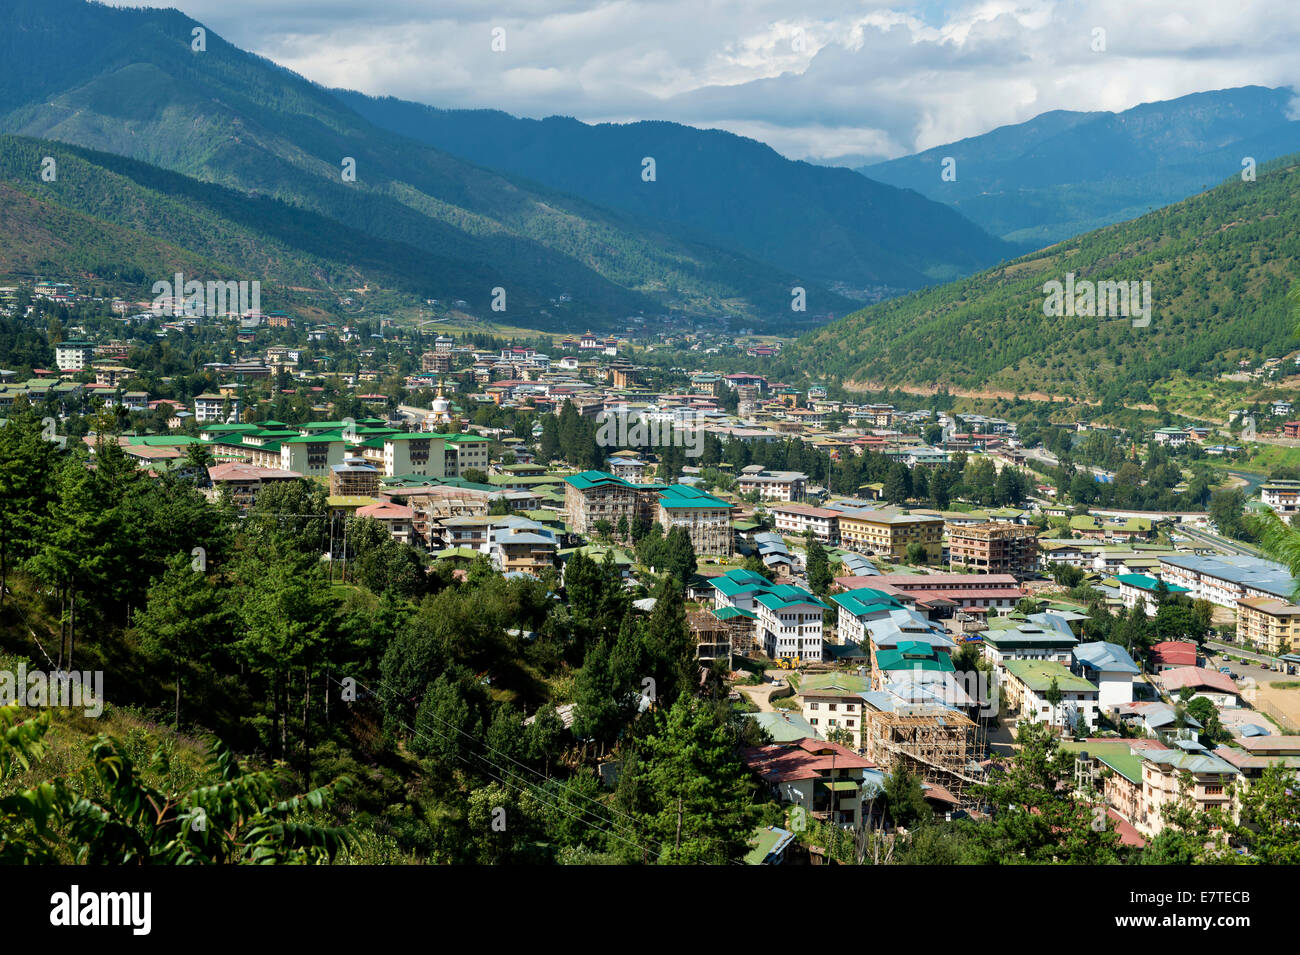 View over the capital city of Thimphu, Bhutan - Stock Image